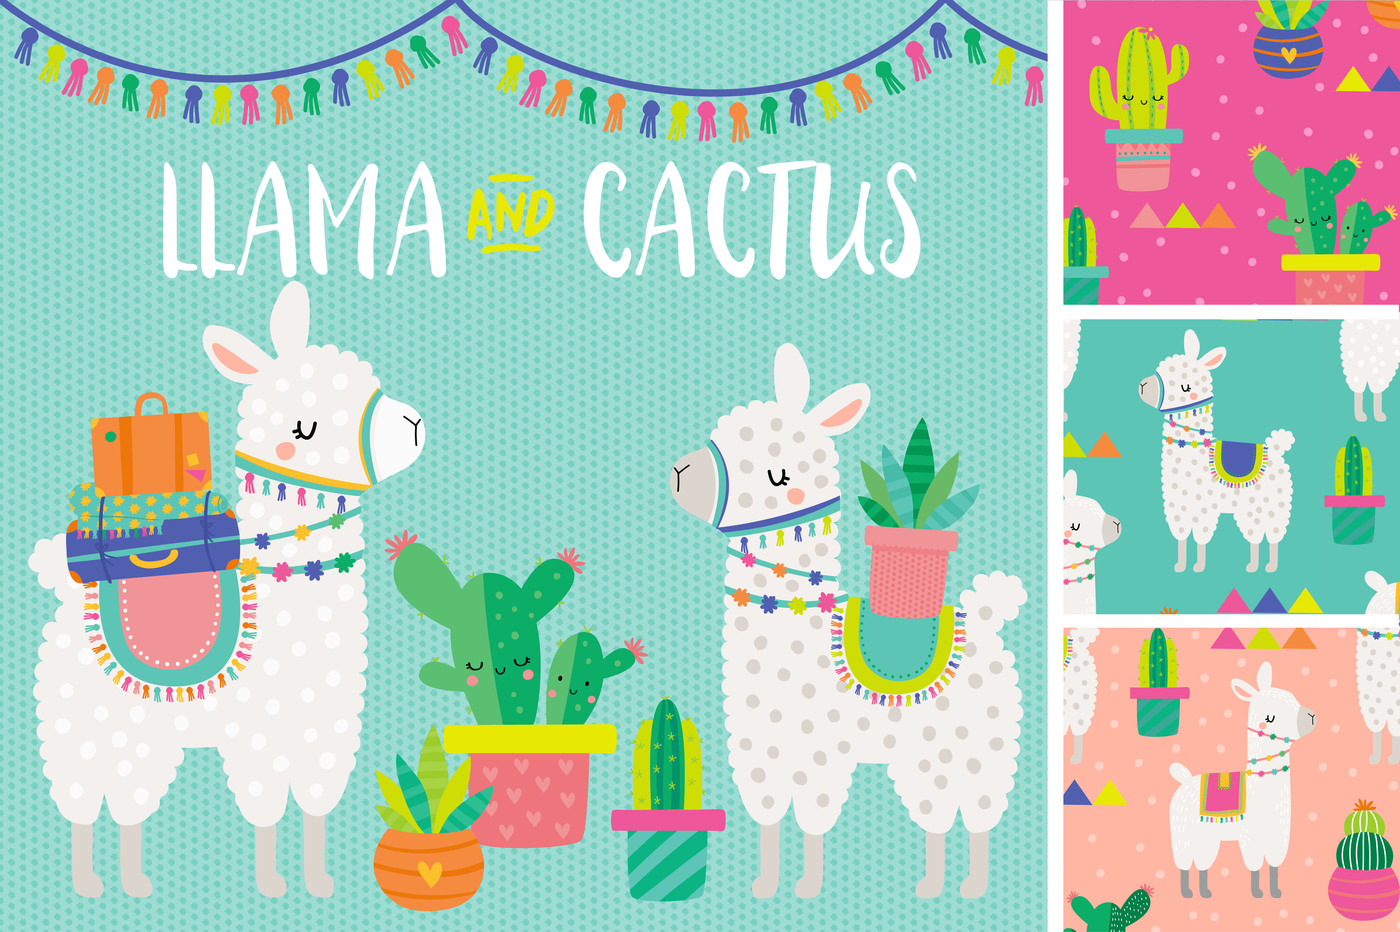 Llama clipart. And cactus patterns by